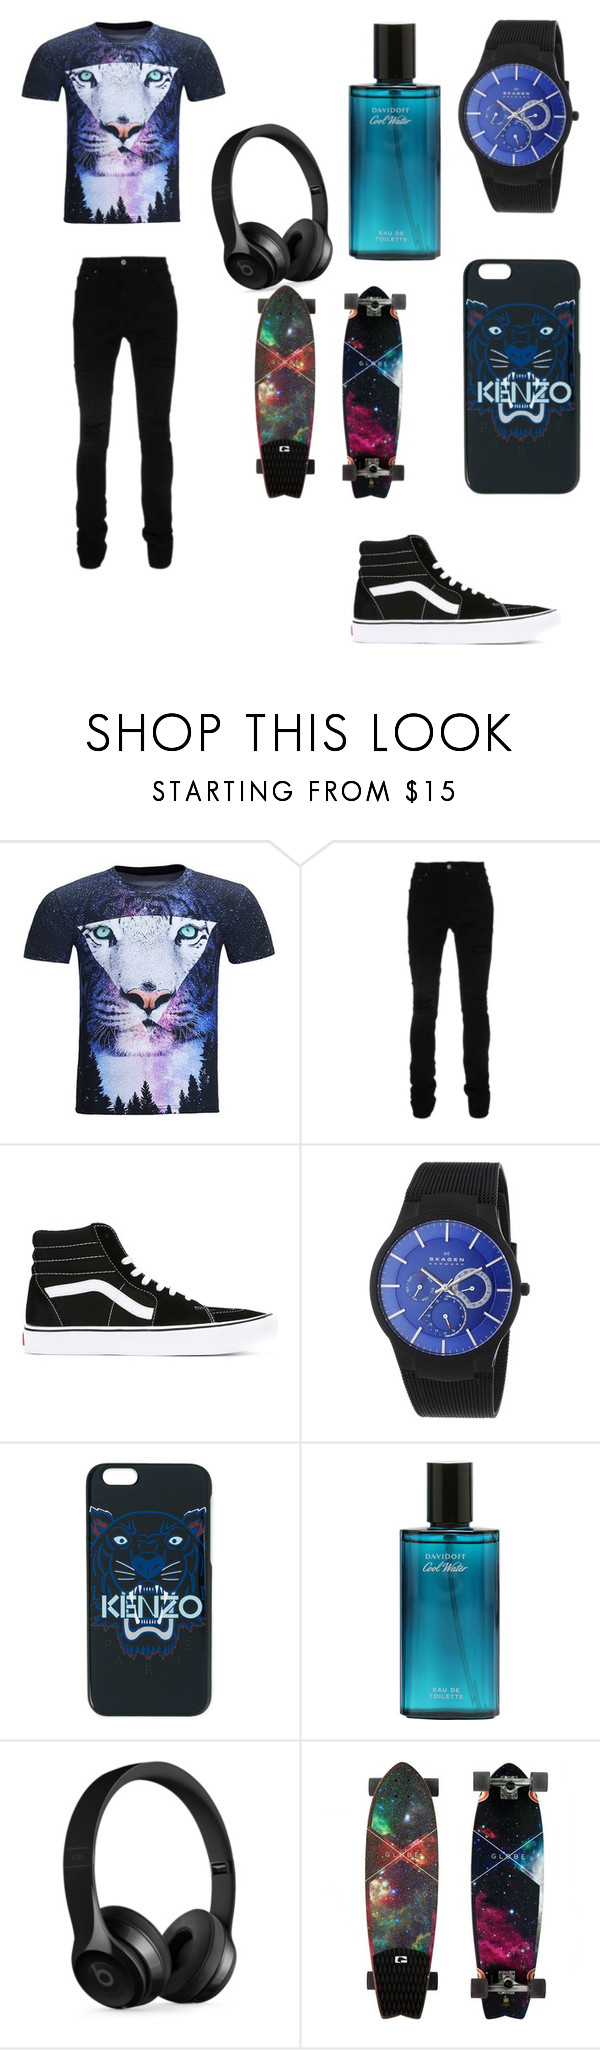 """No name"" by martialartsqueen ❤ liked on Polyvore featuring AMIRI, Vans, Skagen, Kenzo, Beats by Dr. Dre, men's fashion and menswear"